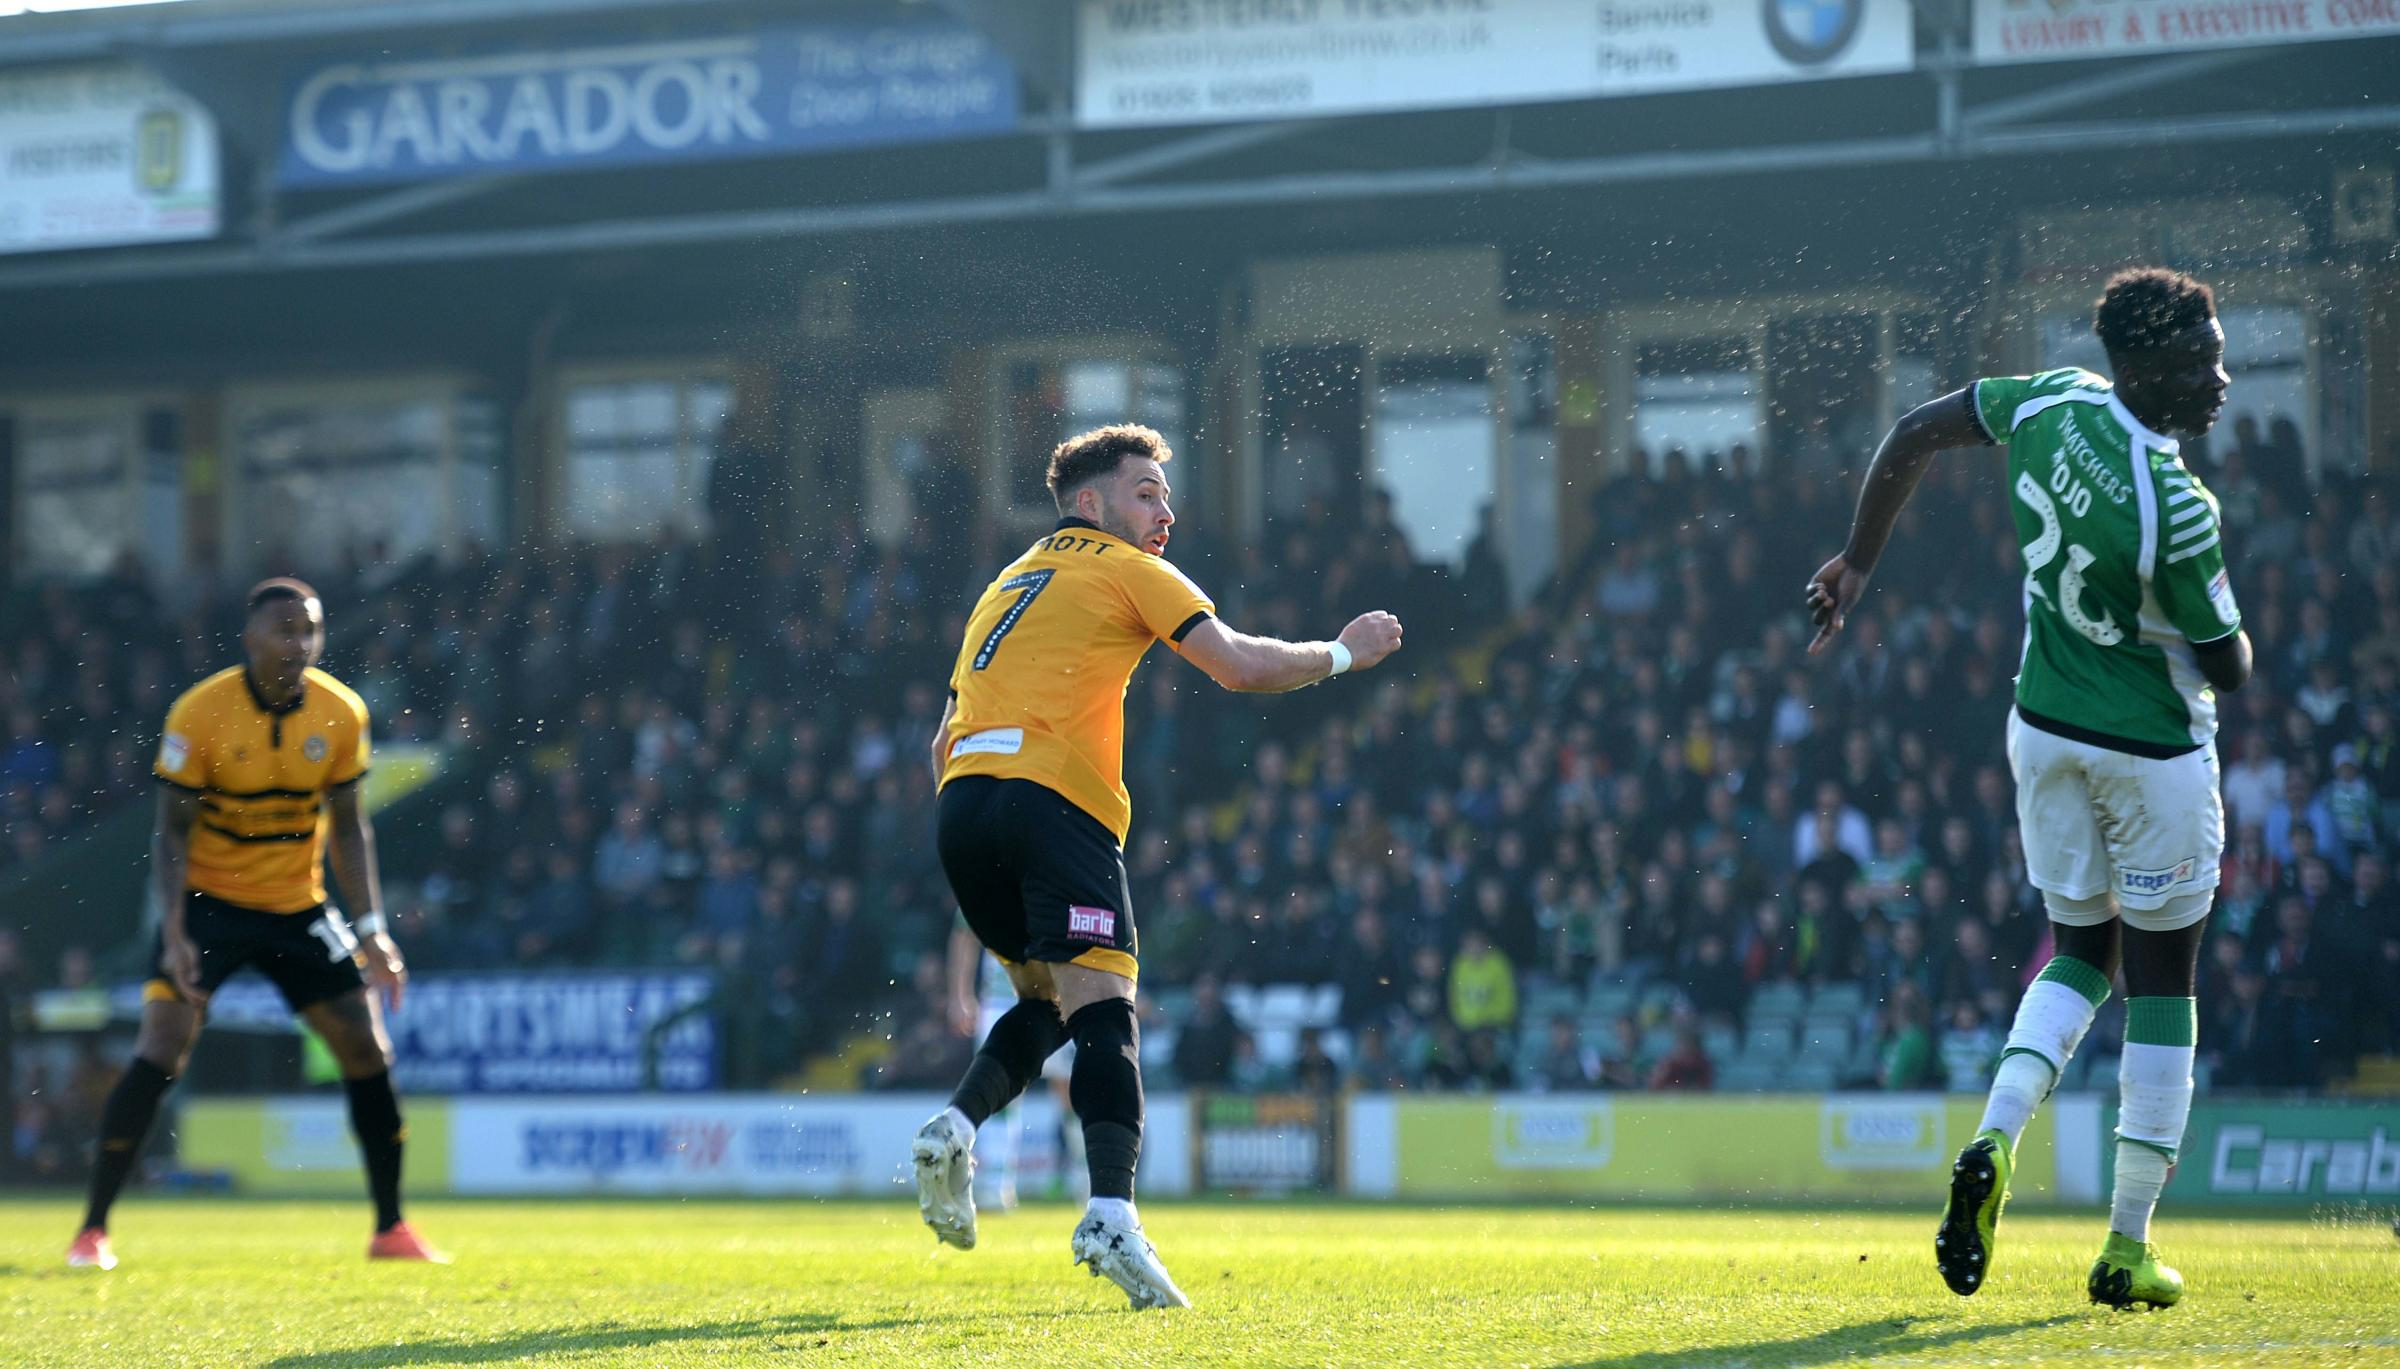 BREAKTHROUGH: Robbie Willmott headed Newport County into the lead at Yeovil Town. Pictures: Huw Evans Agency